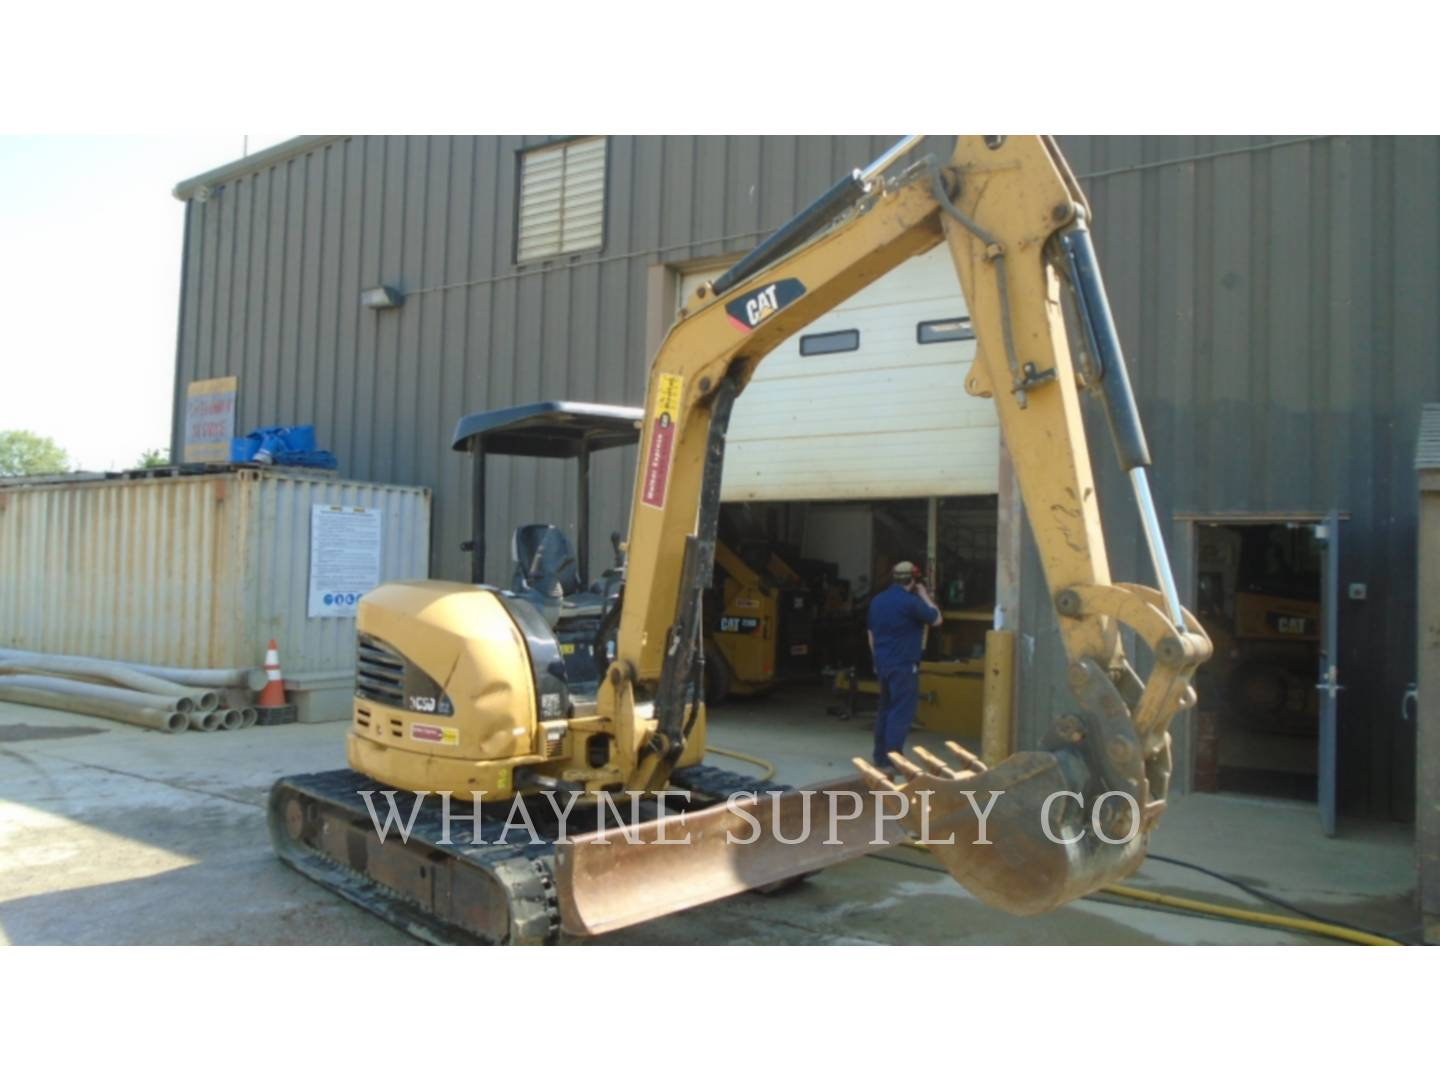 Whayne Walker Cat | Used Cat Excavators - Used Mini